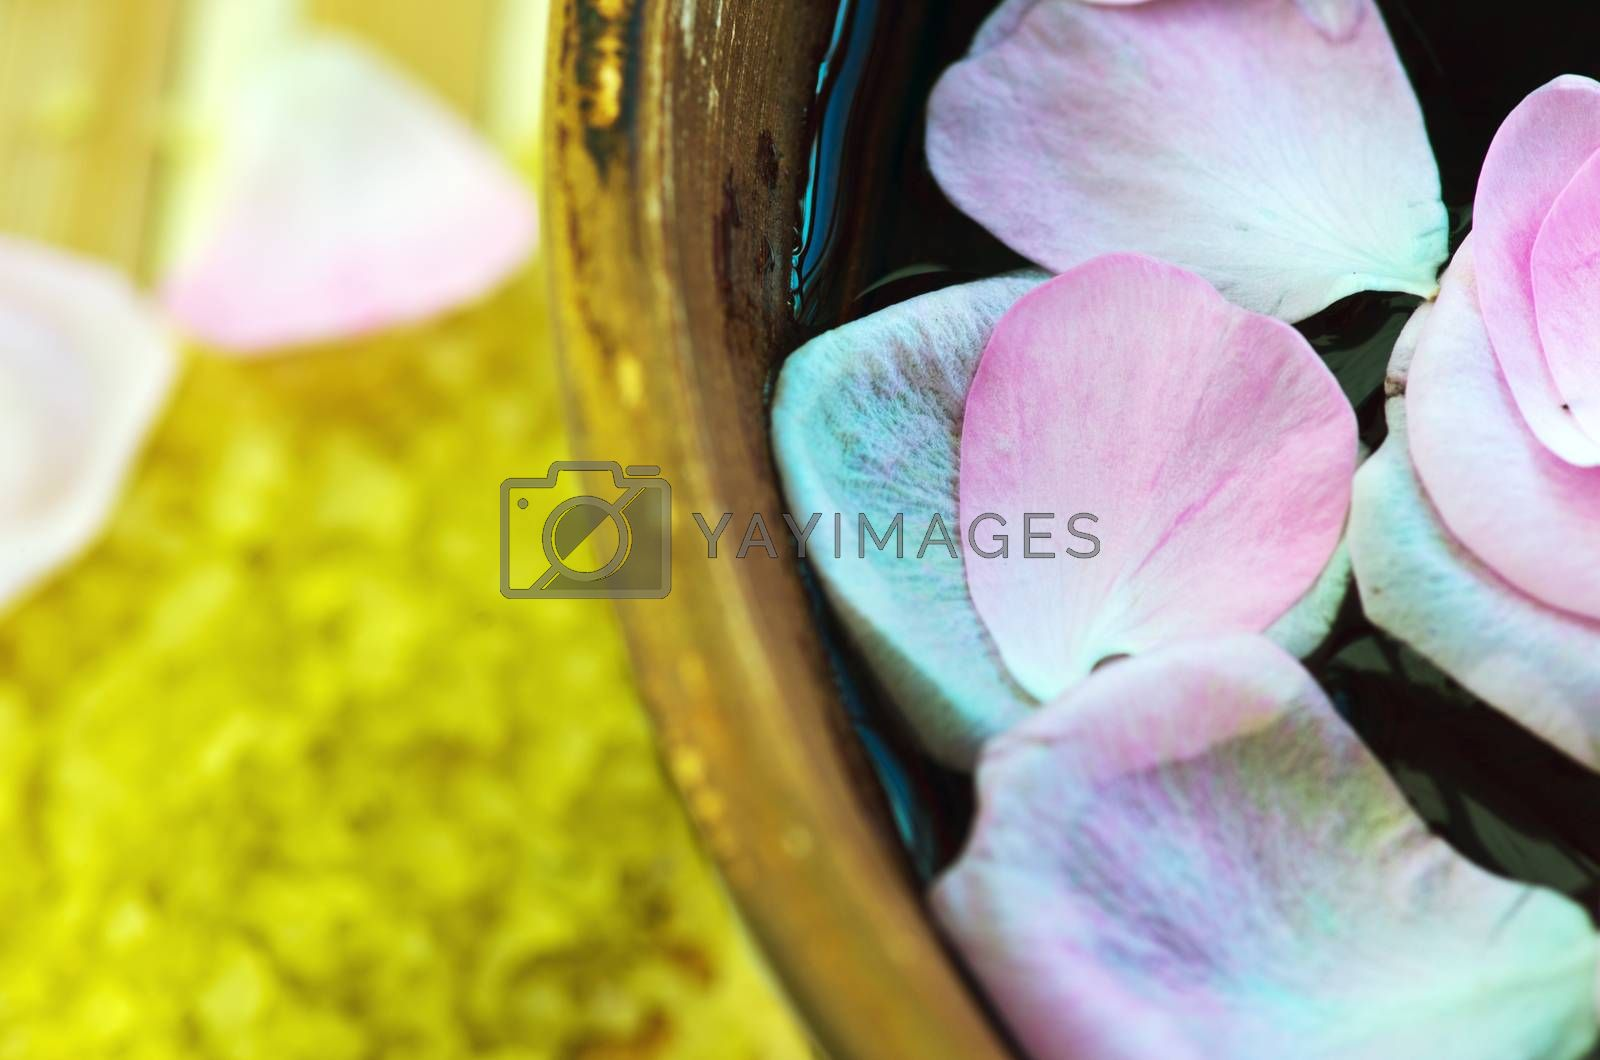 Royalty free image of Health care background made of many still-life elements by dolnikow